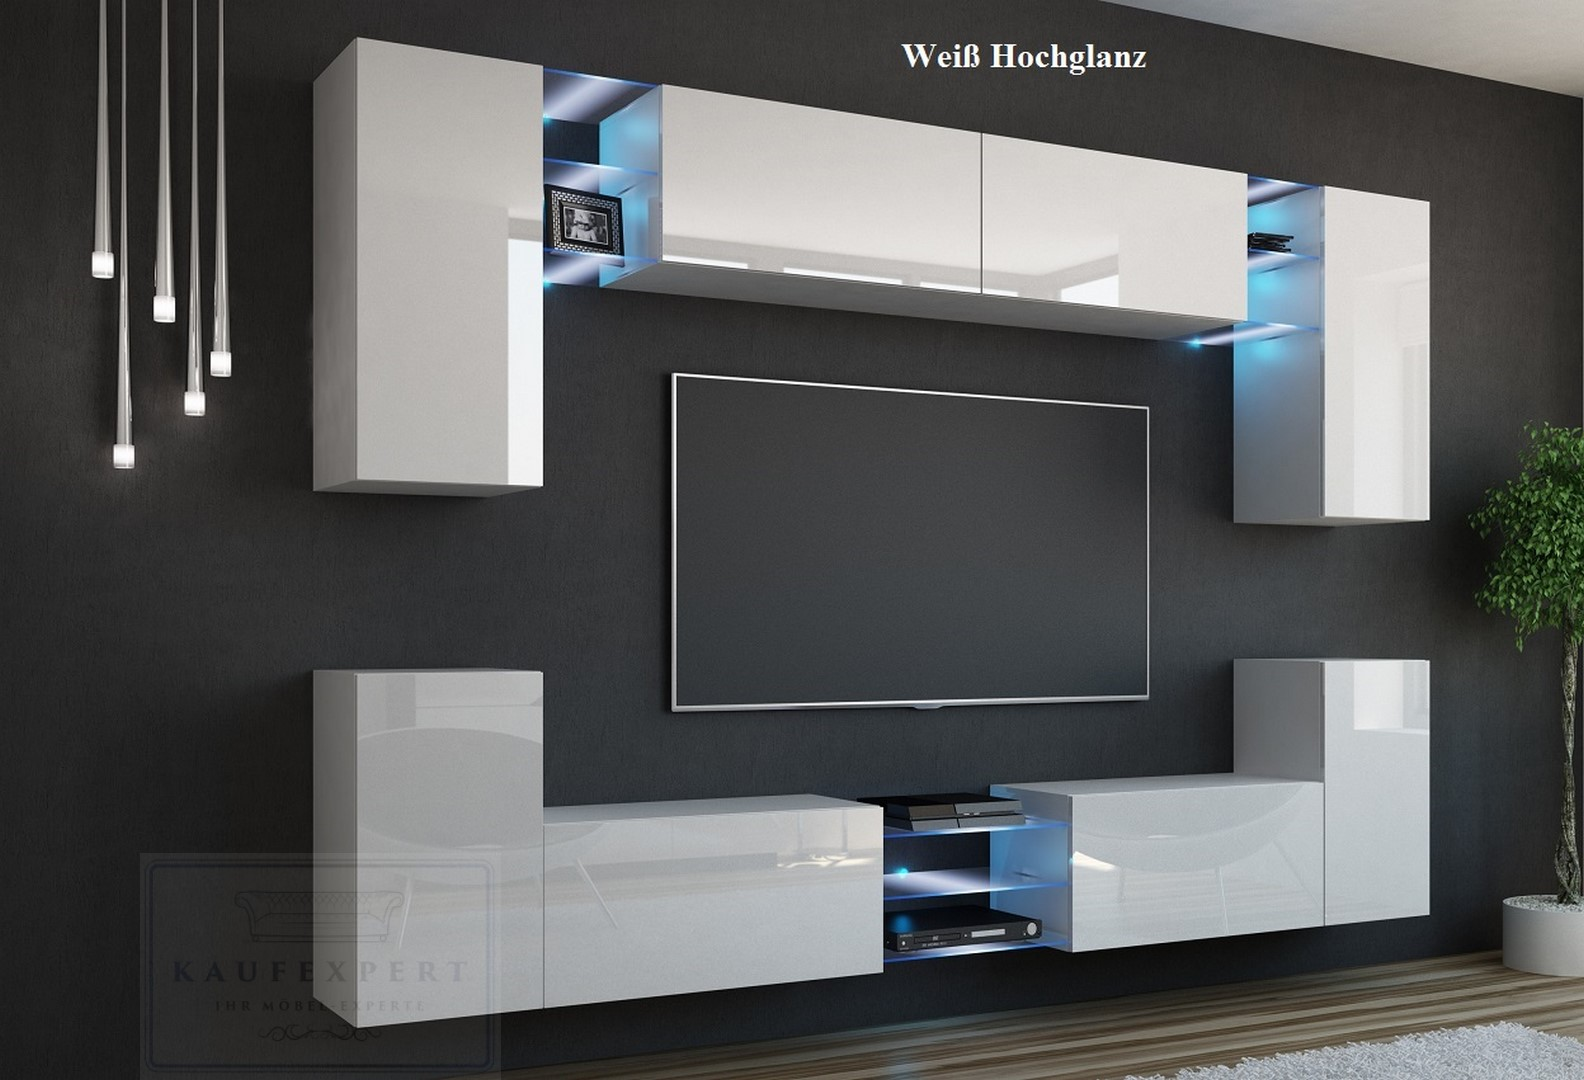 wohnwand schwarz hochglanz great related image of schwarz hochglanz wohnwand weis schwarz cool. Black Bedroom Furniture Sets. Home Design Ideas